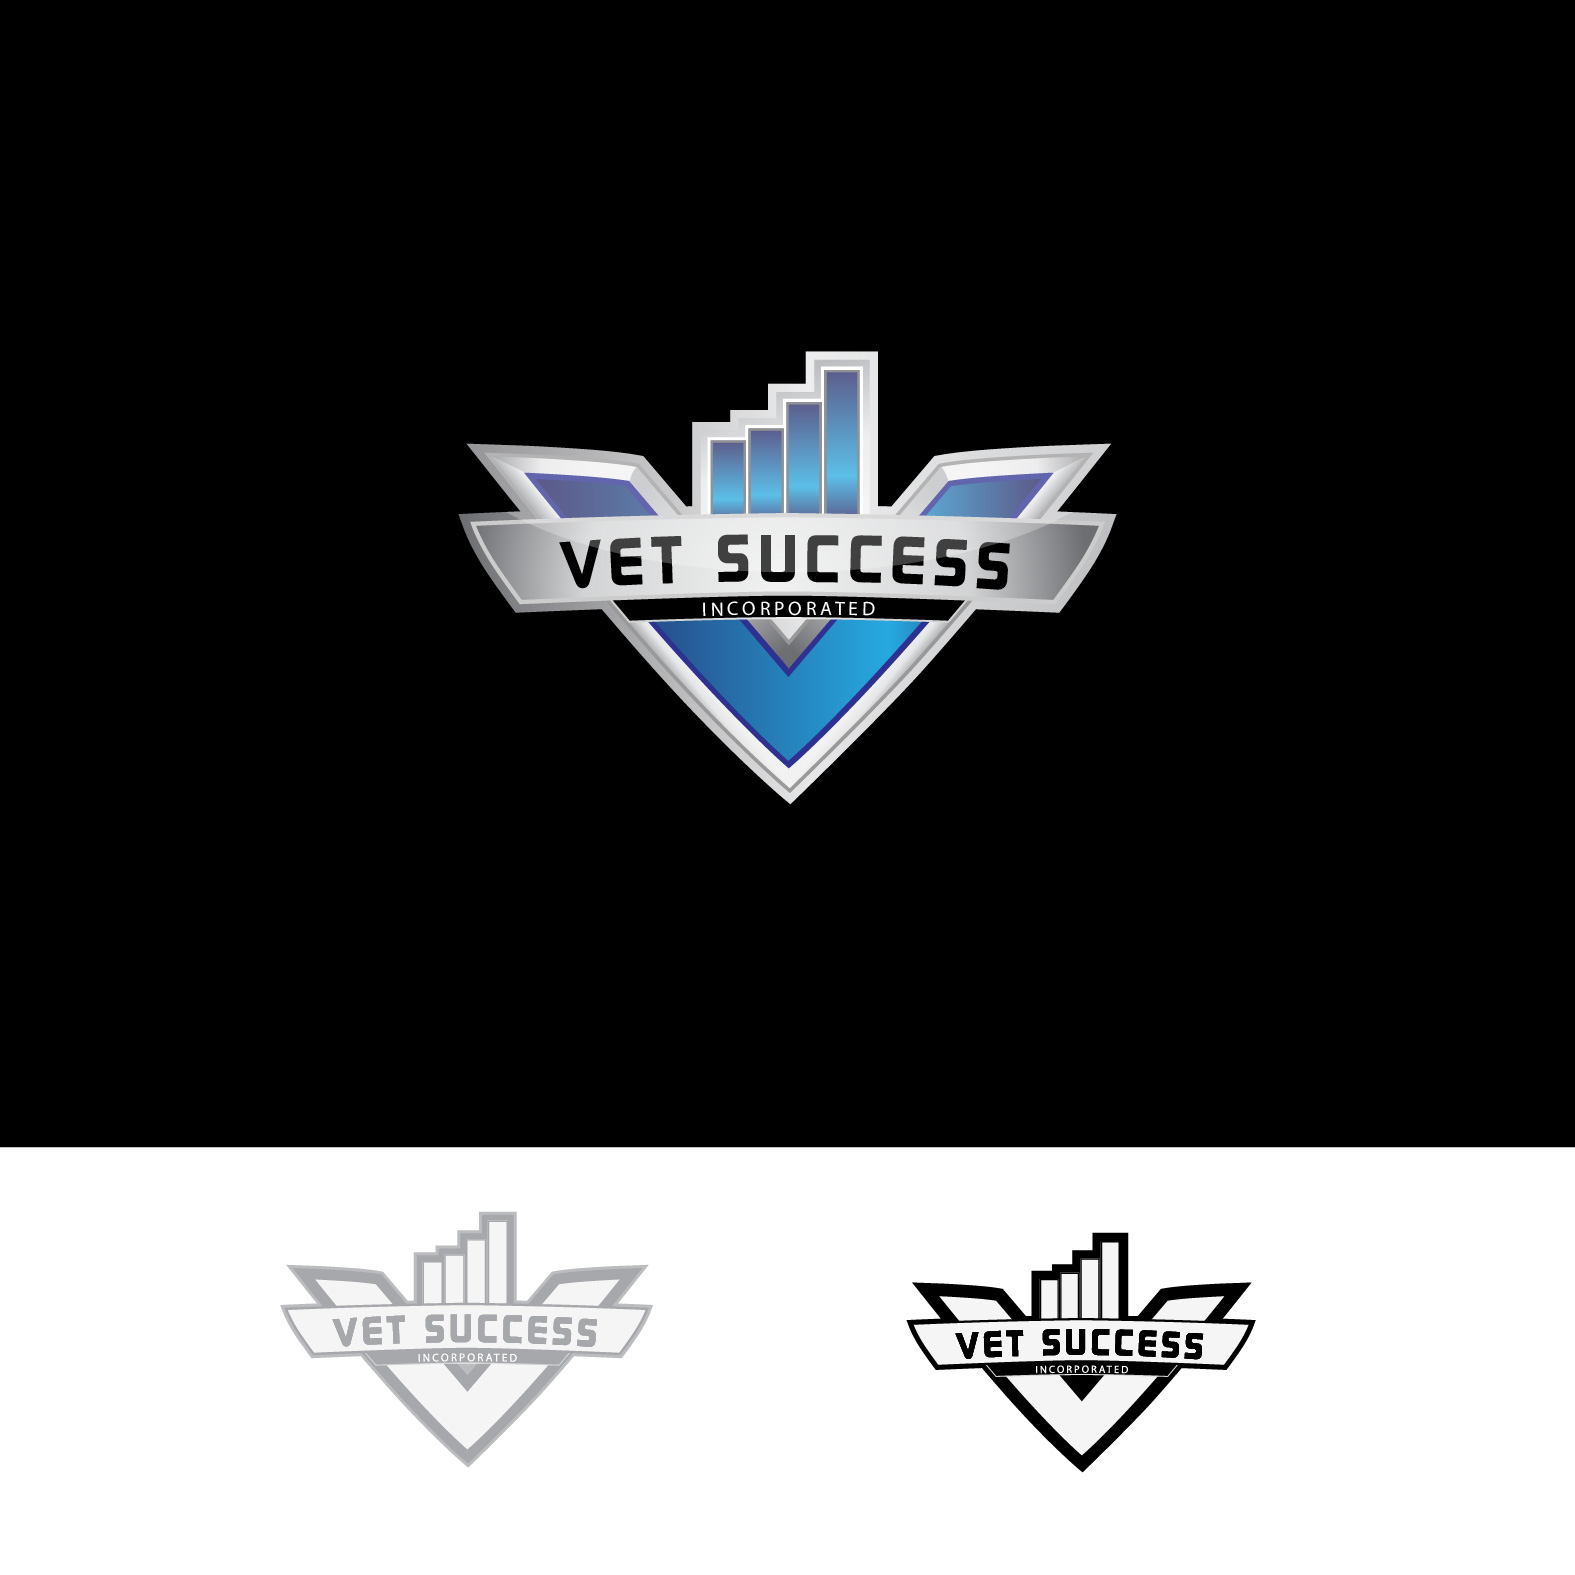 Logo Design by lagalag - Entry No. 66 in the Logo Design Contest Imaginative Logo Design for Vet Success Inc..